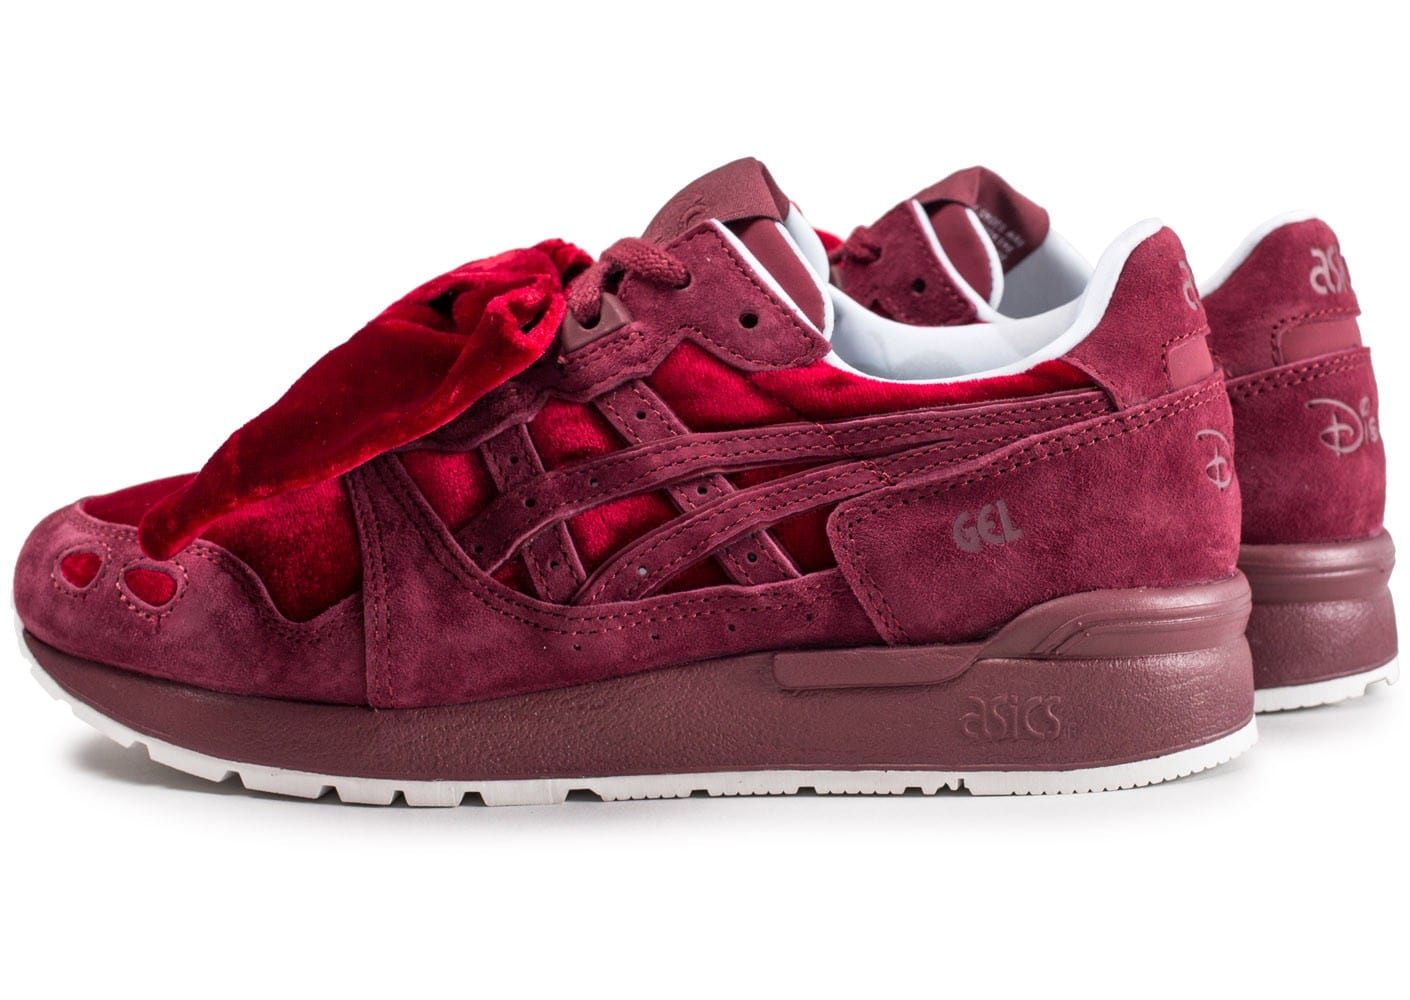 asics boutique bordeaux